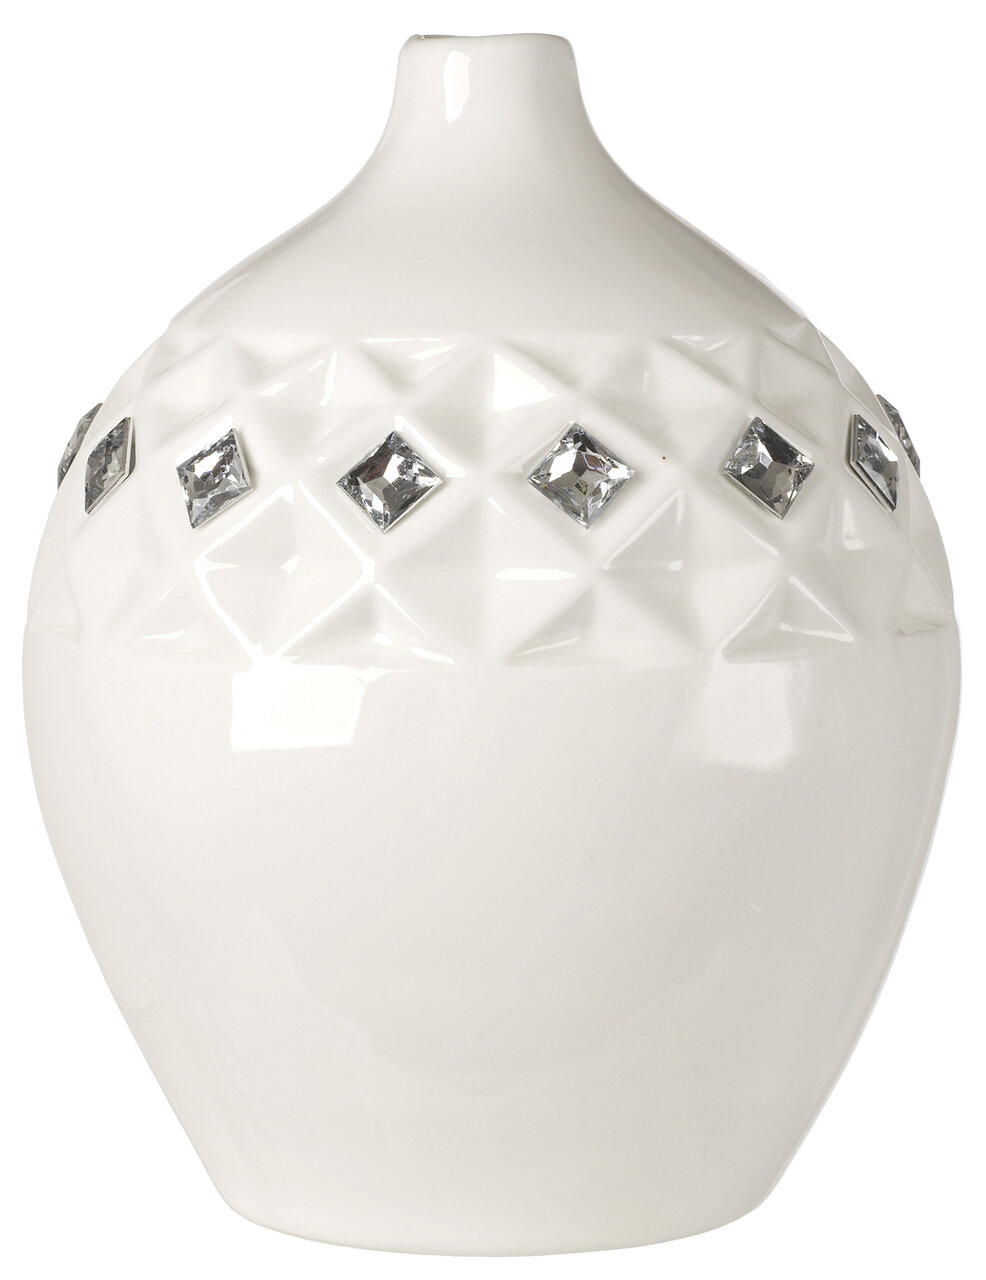 5th ave store italian bone china embedded with swarovski crystals 5th ave store italian bone china embedded with swarovski crystals vase reviews wayfair reviewsmspy